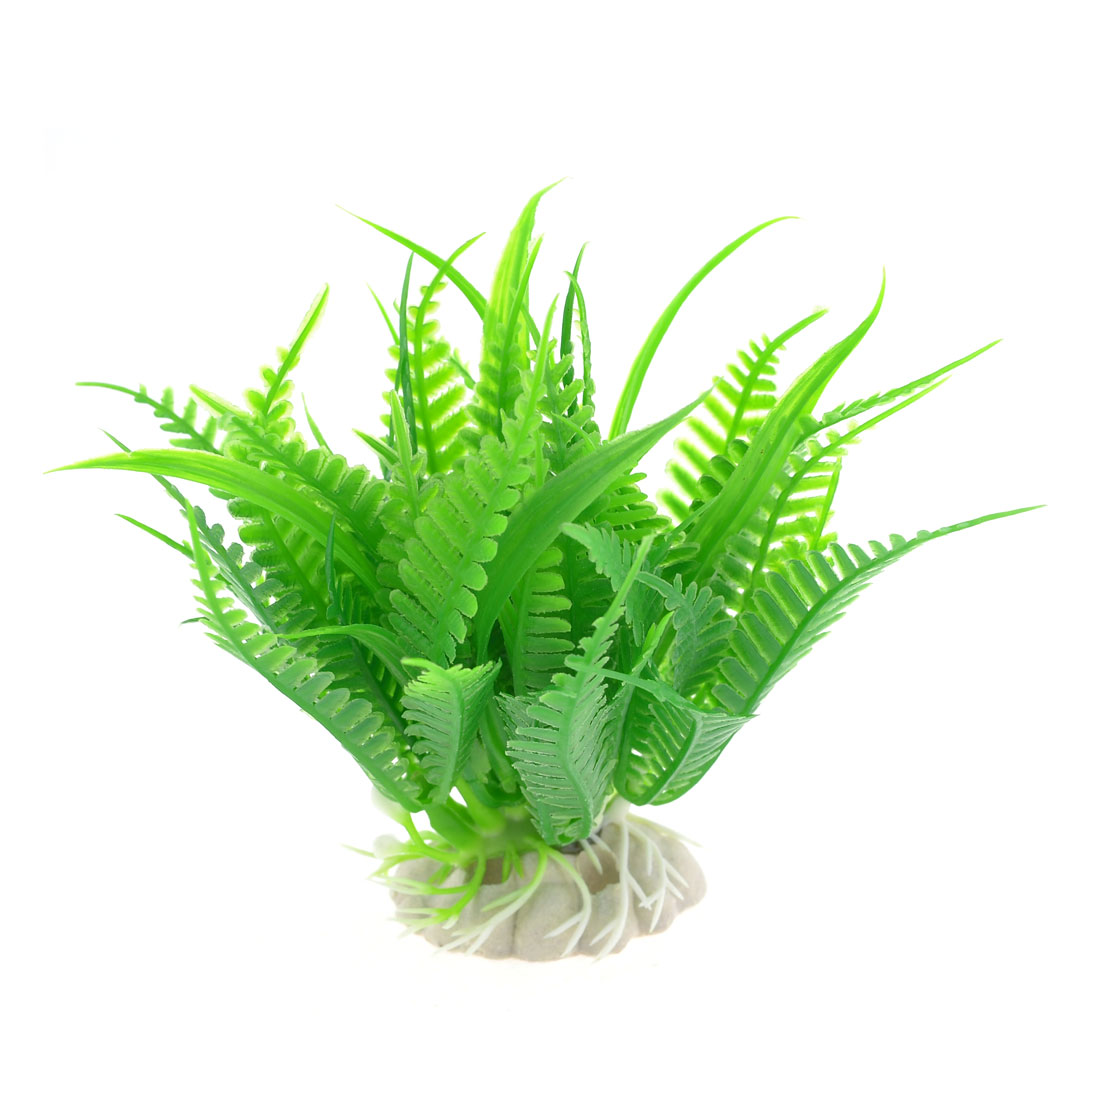 Aquarium Fish Tank Ornament Green Plastic Water Plant Grass w Ceramic Base